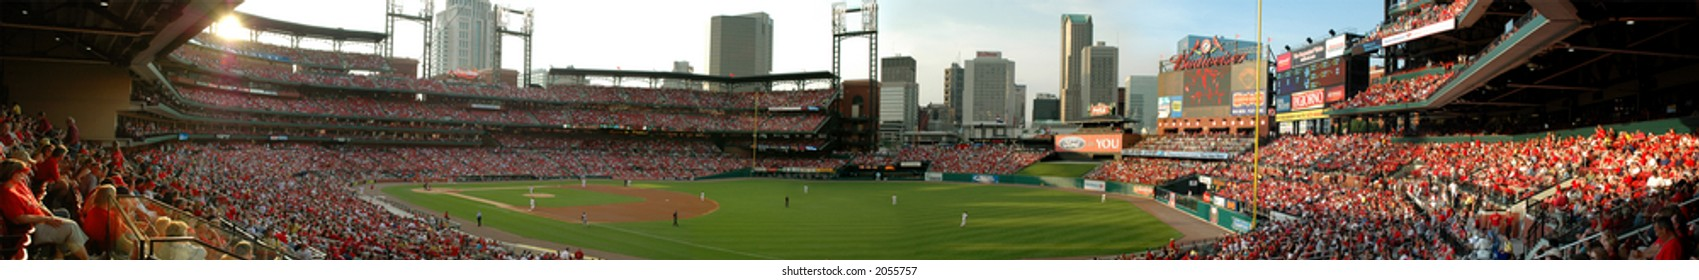 The New Busch Stadium Home of the Saint Louis Cardinals (Panoramic View stitched from six images)